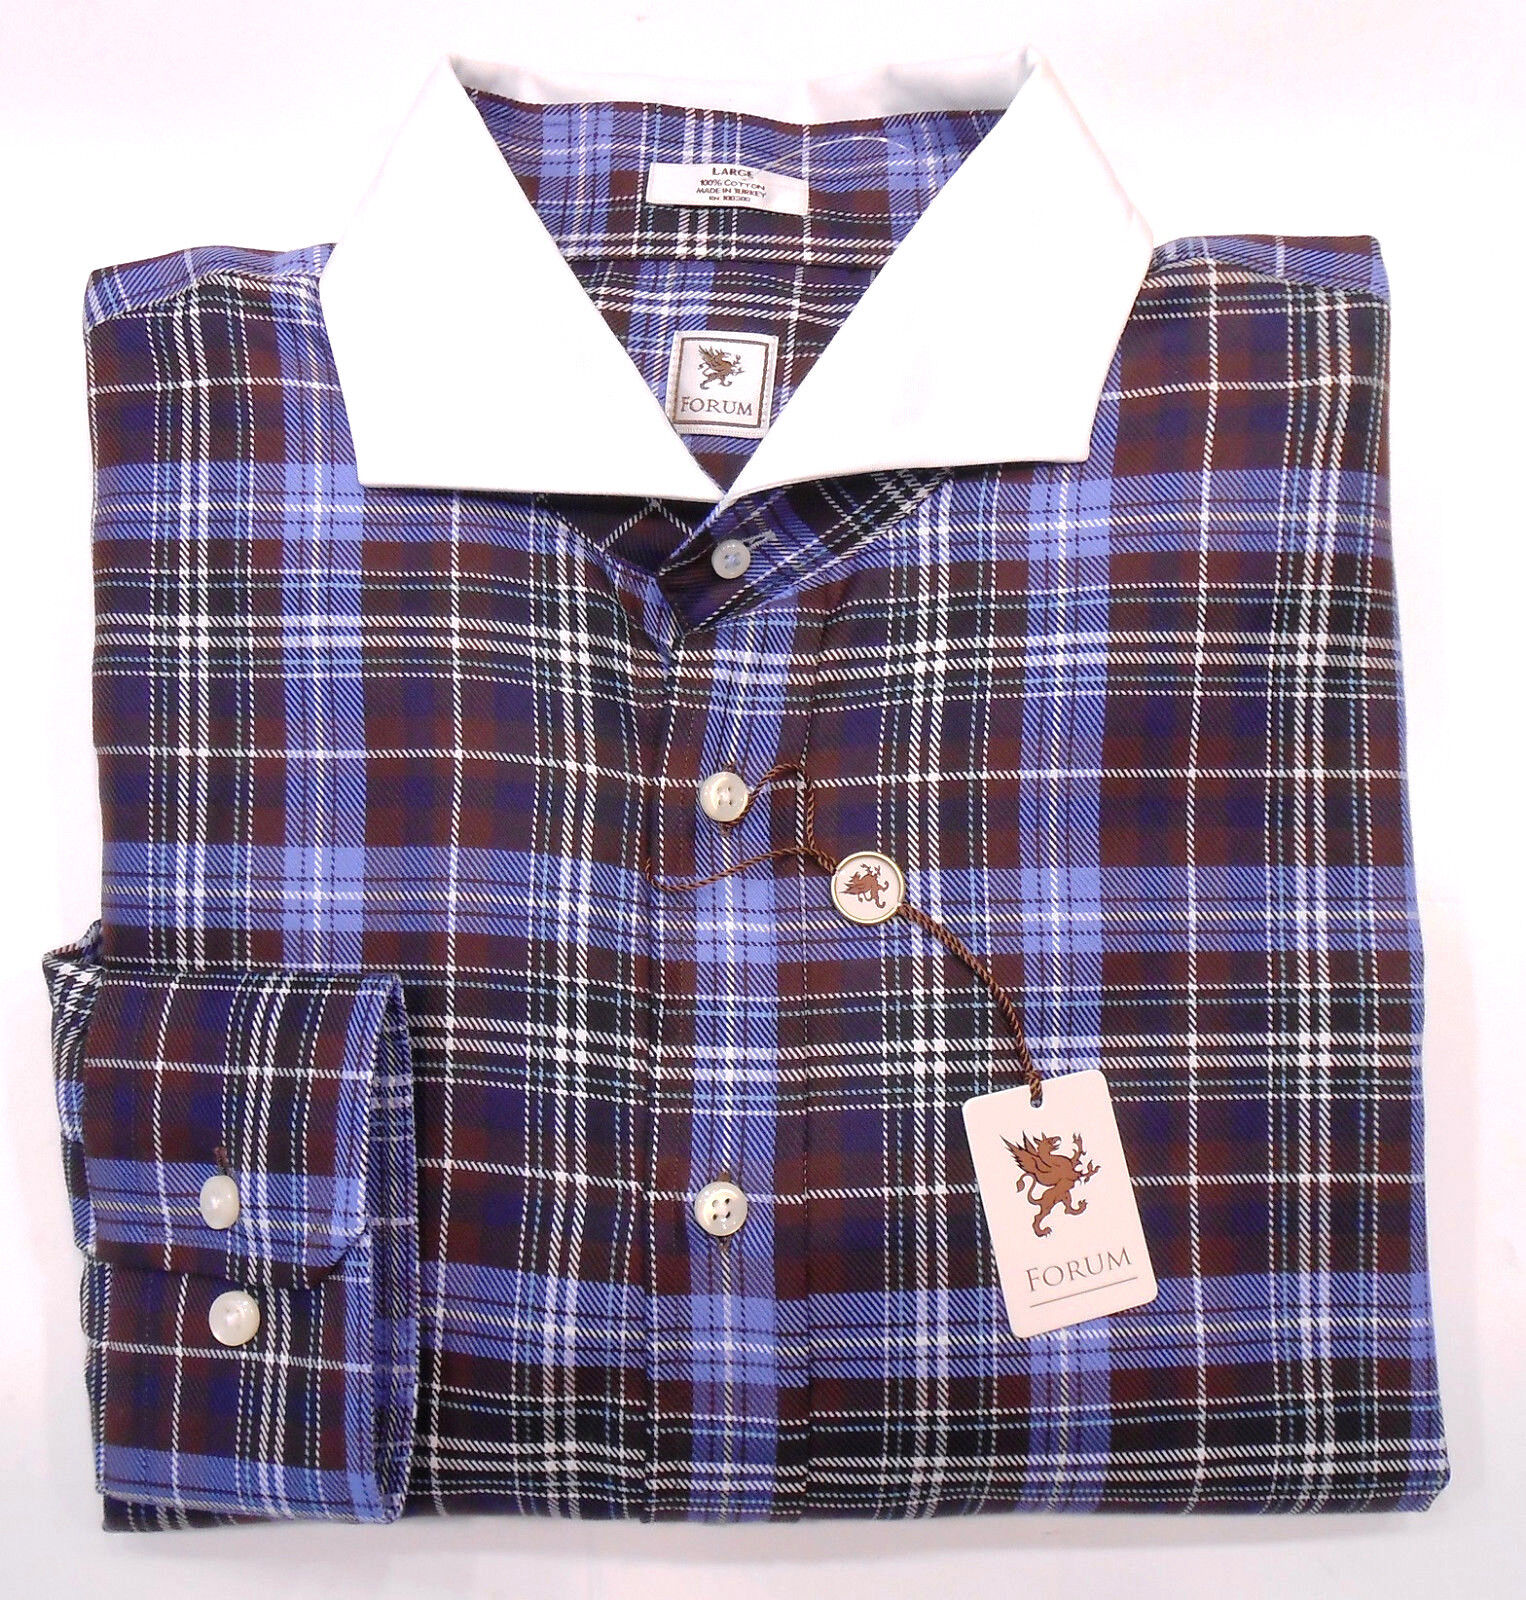 PETER MILLAR BNWT 245 ANDRISEN MORTON FORUM TARTAN COTTON SHIRT US SZ L / 17-35